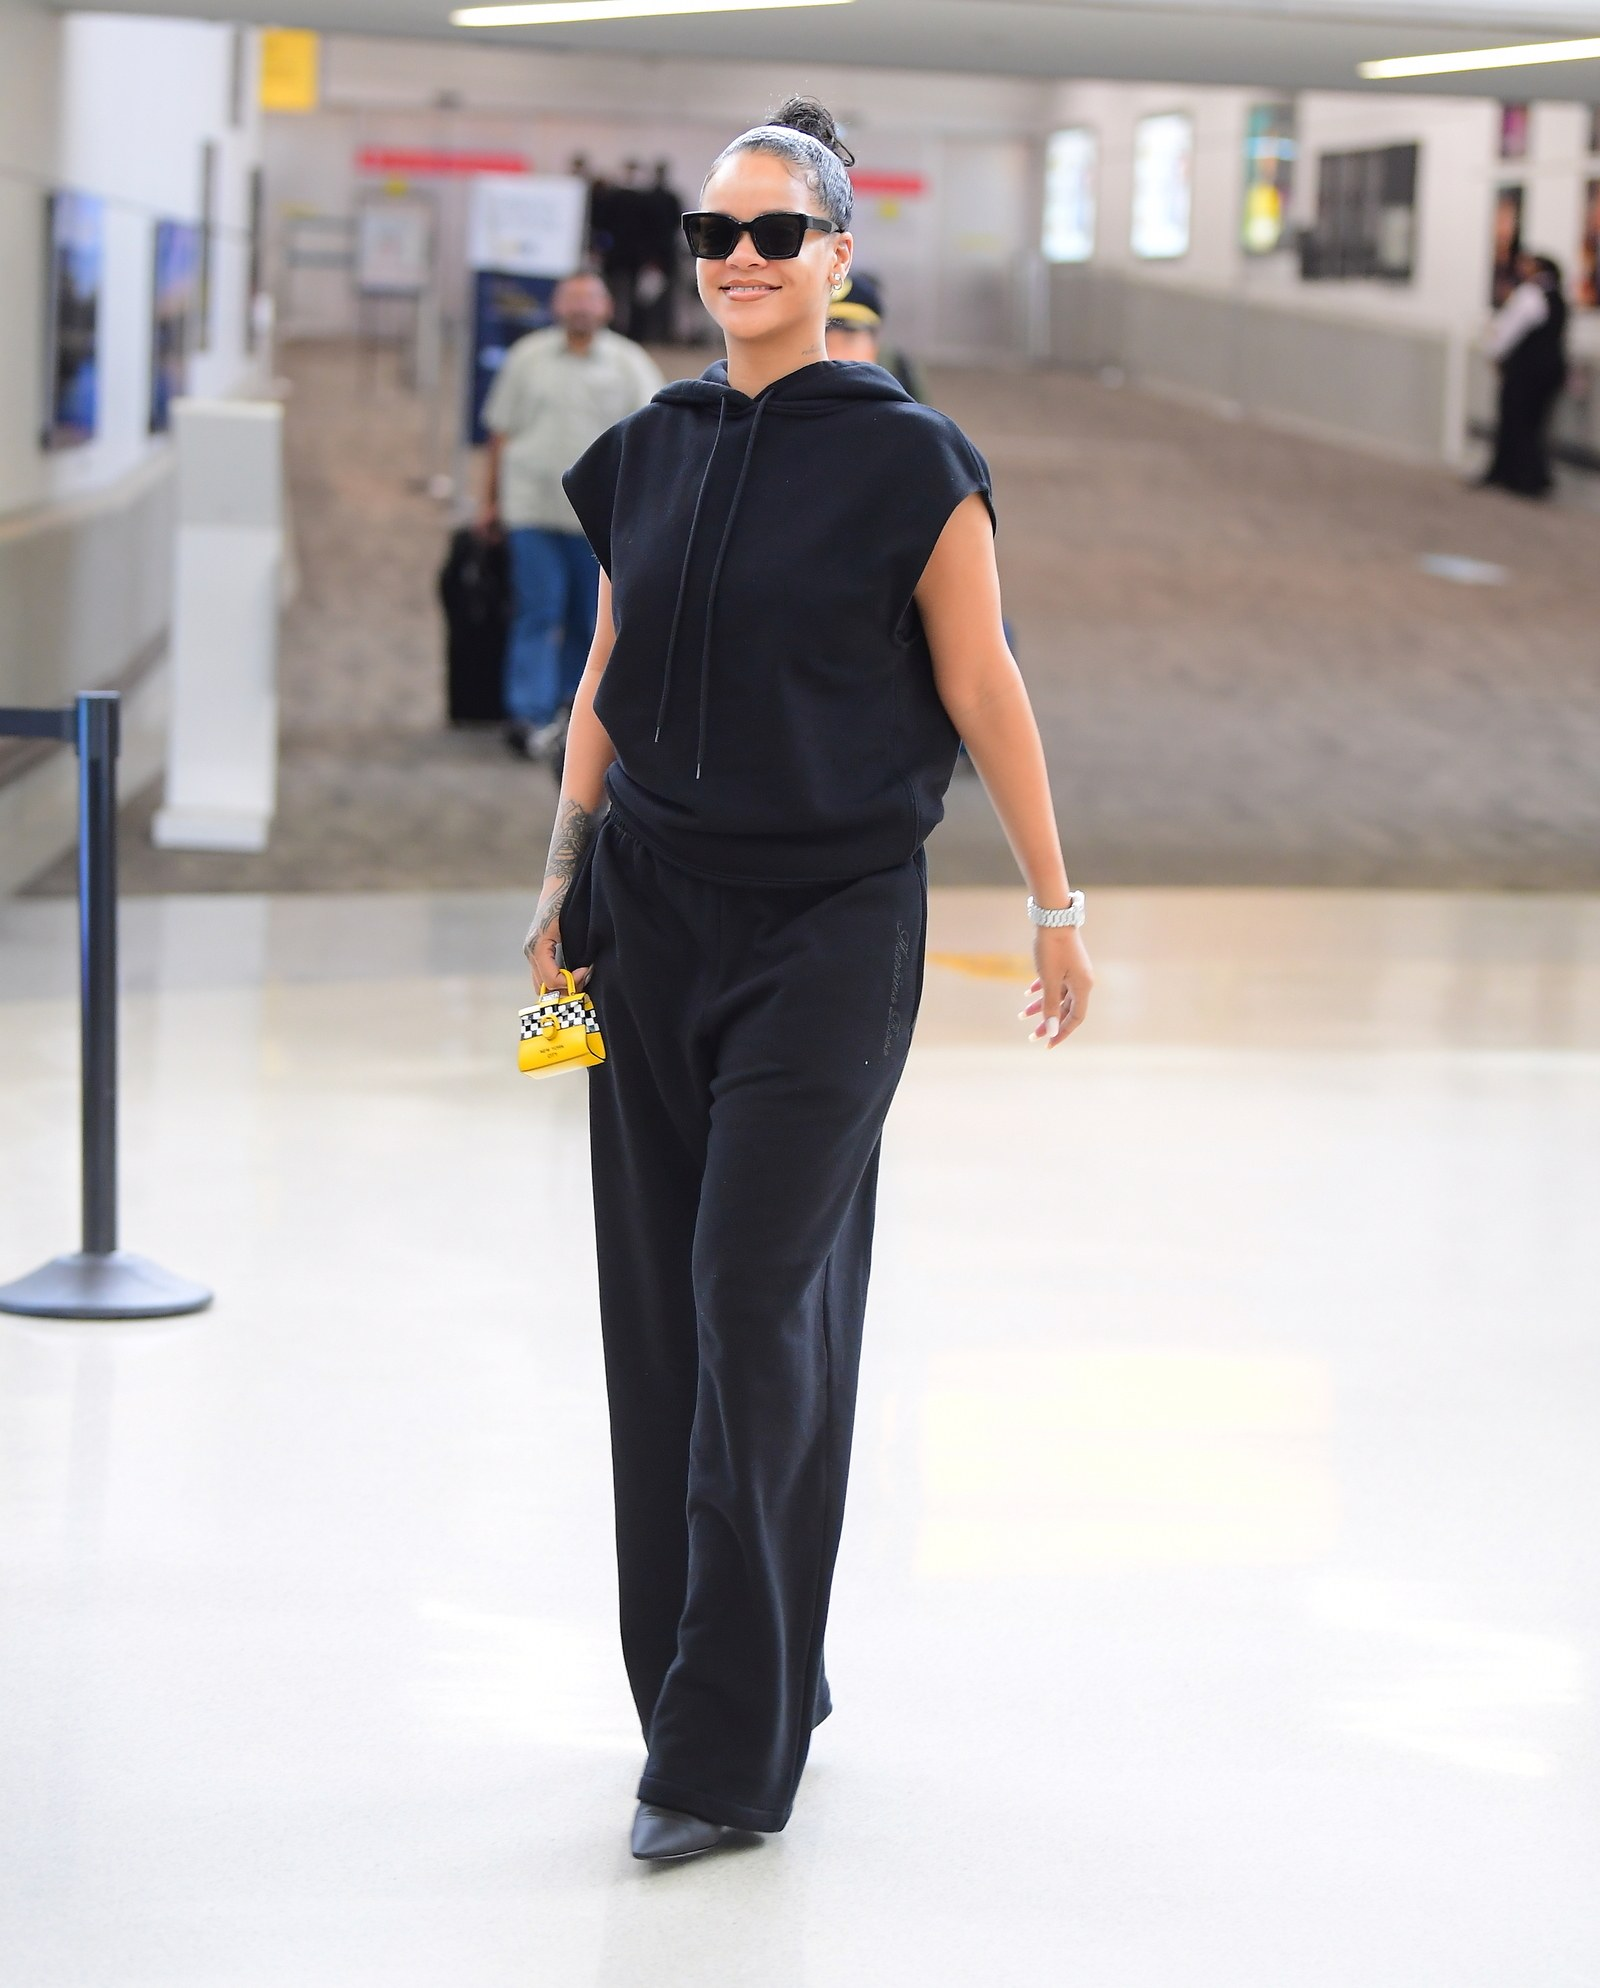 Rihanna Lands in New York for Fashion Week and Her Only Carry on is a Tiny Micro Purse